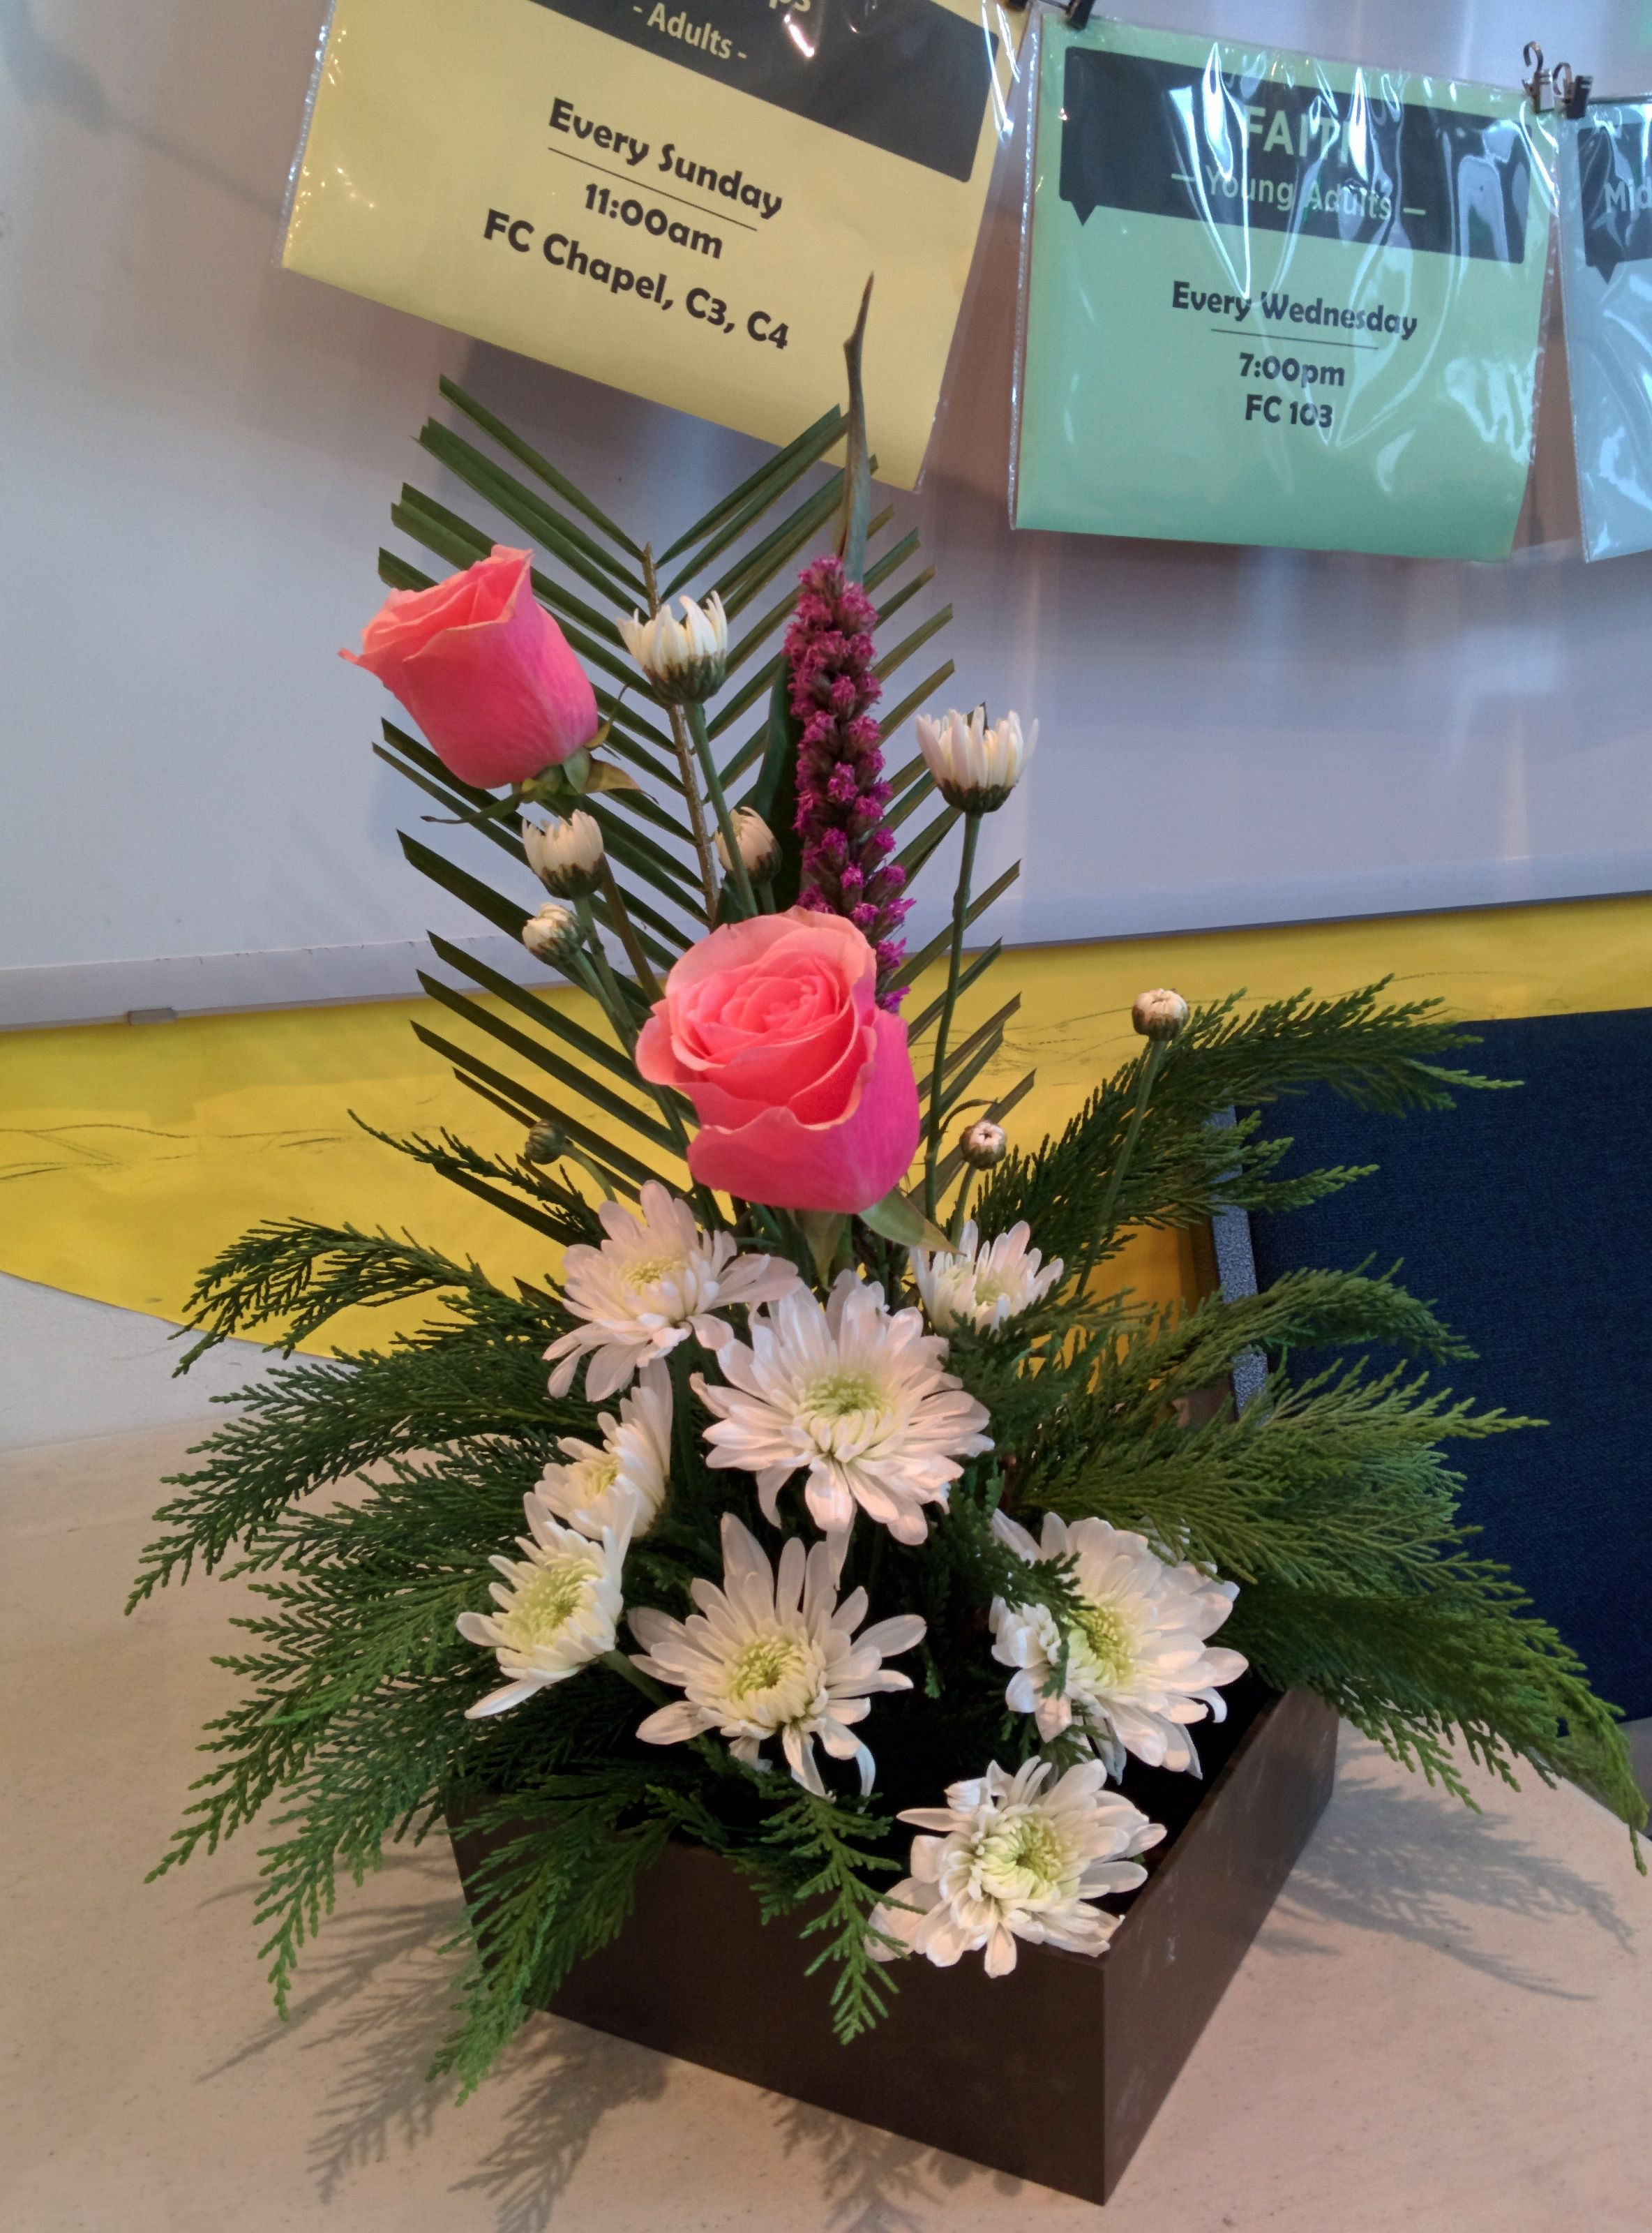 Pin By Jacqueline Tam On Cbmc 2016 Floral Arrangement By Jacqueline Tam Flower Arrangements Floral Arrangements Valentine Decorations